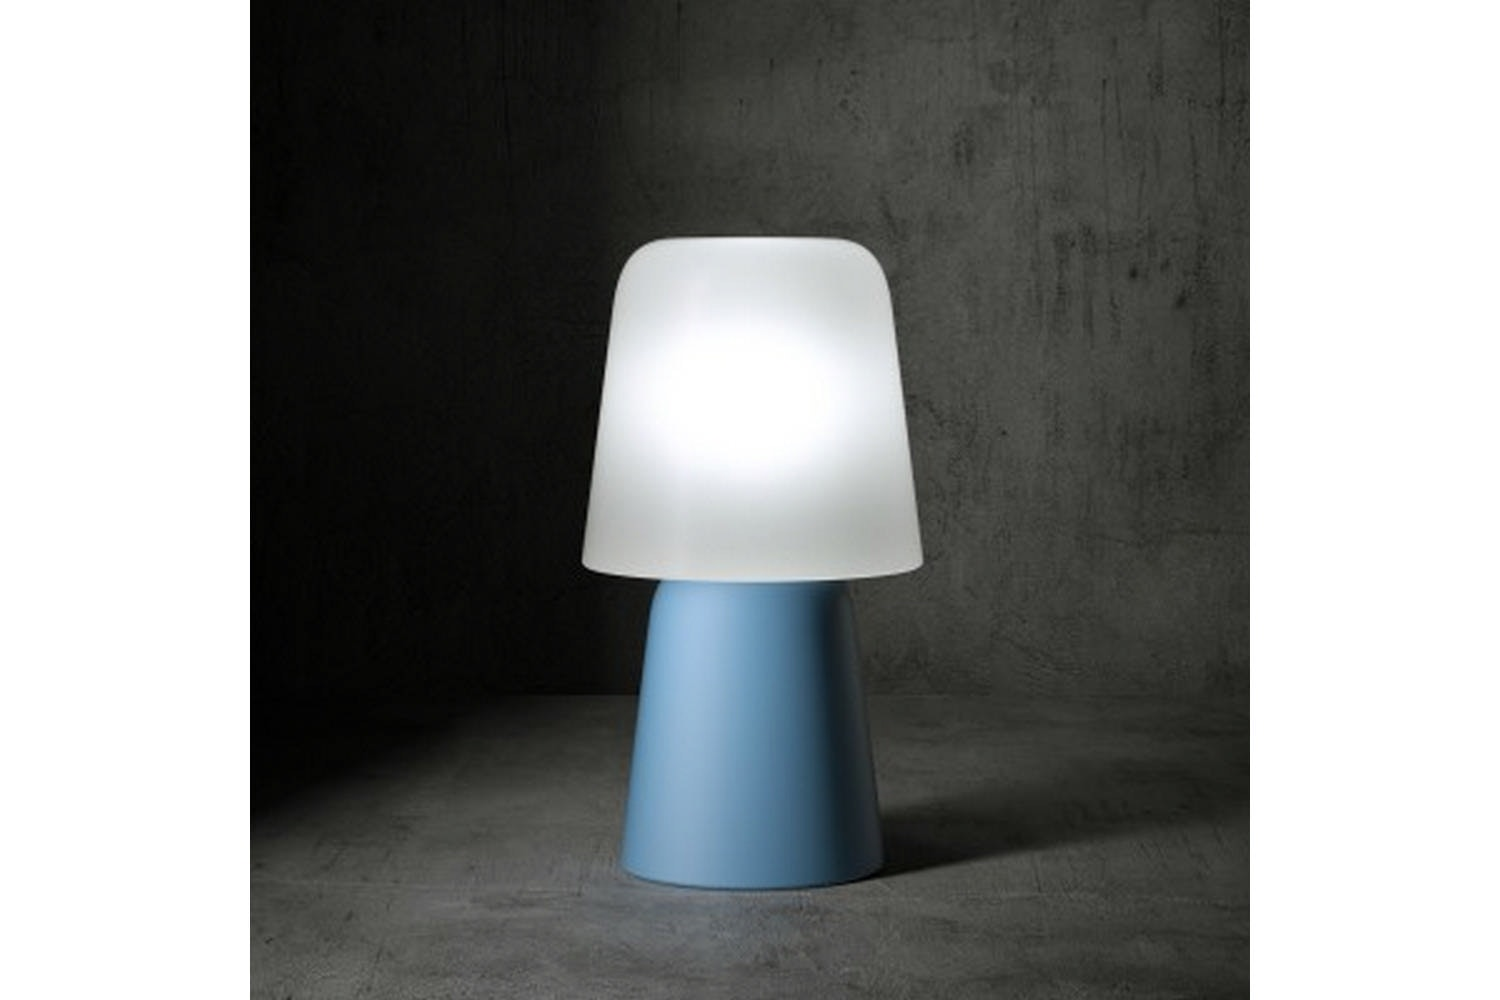 Pic Nic Floor Lamp by Joan Gaspar for Serralunga